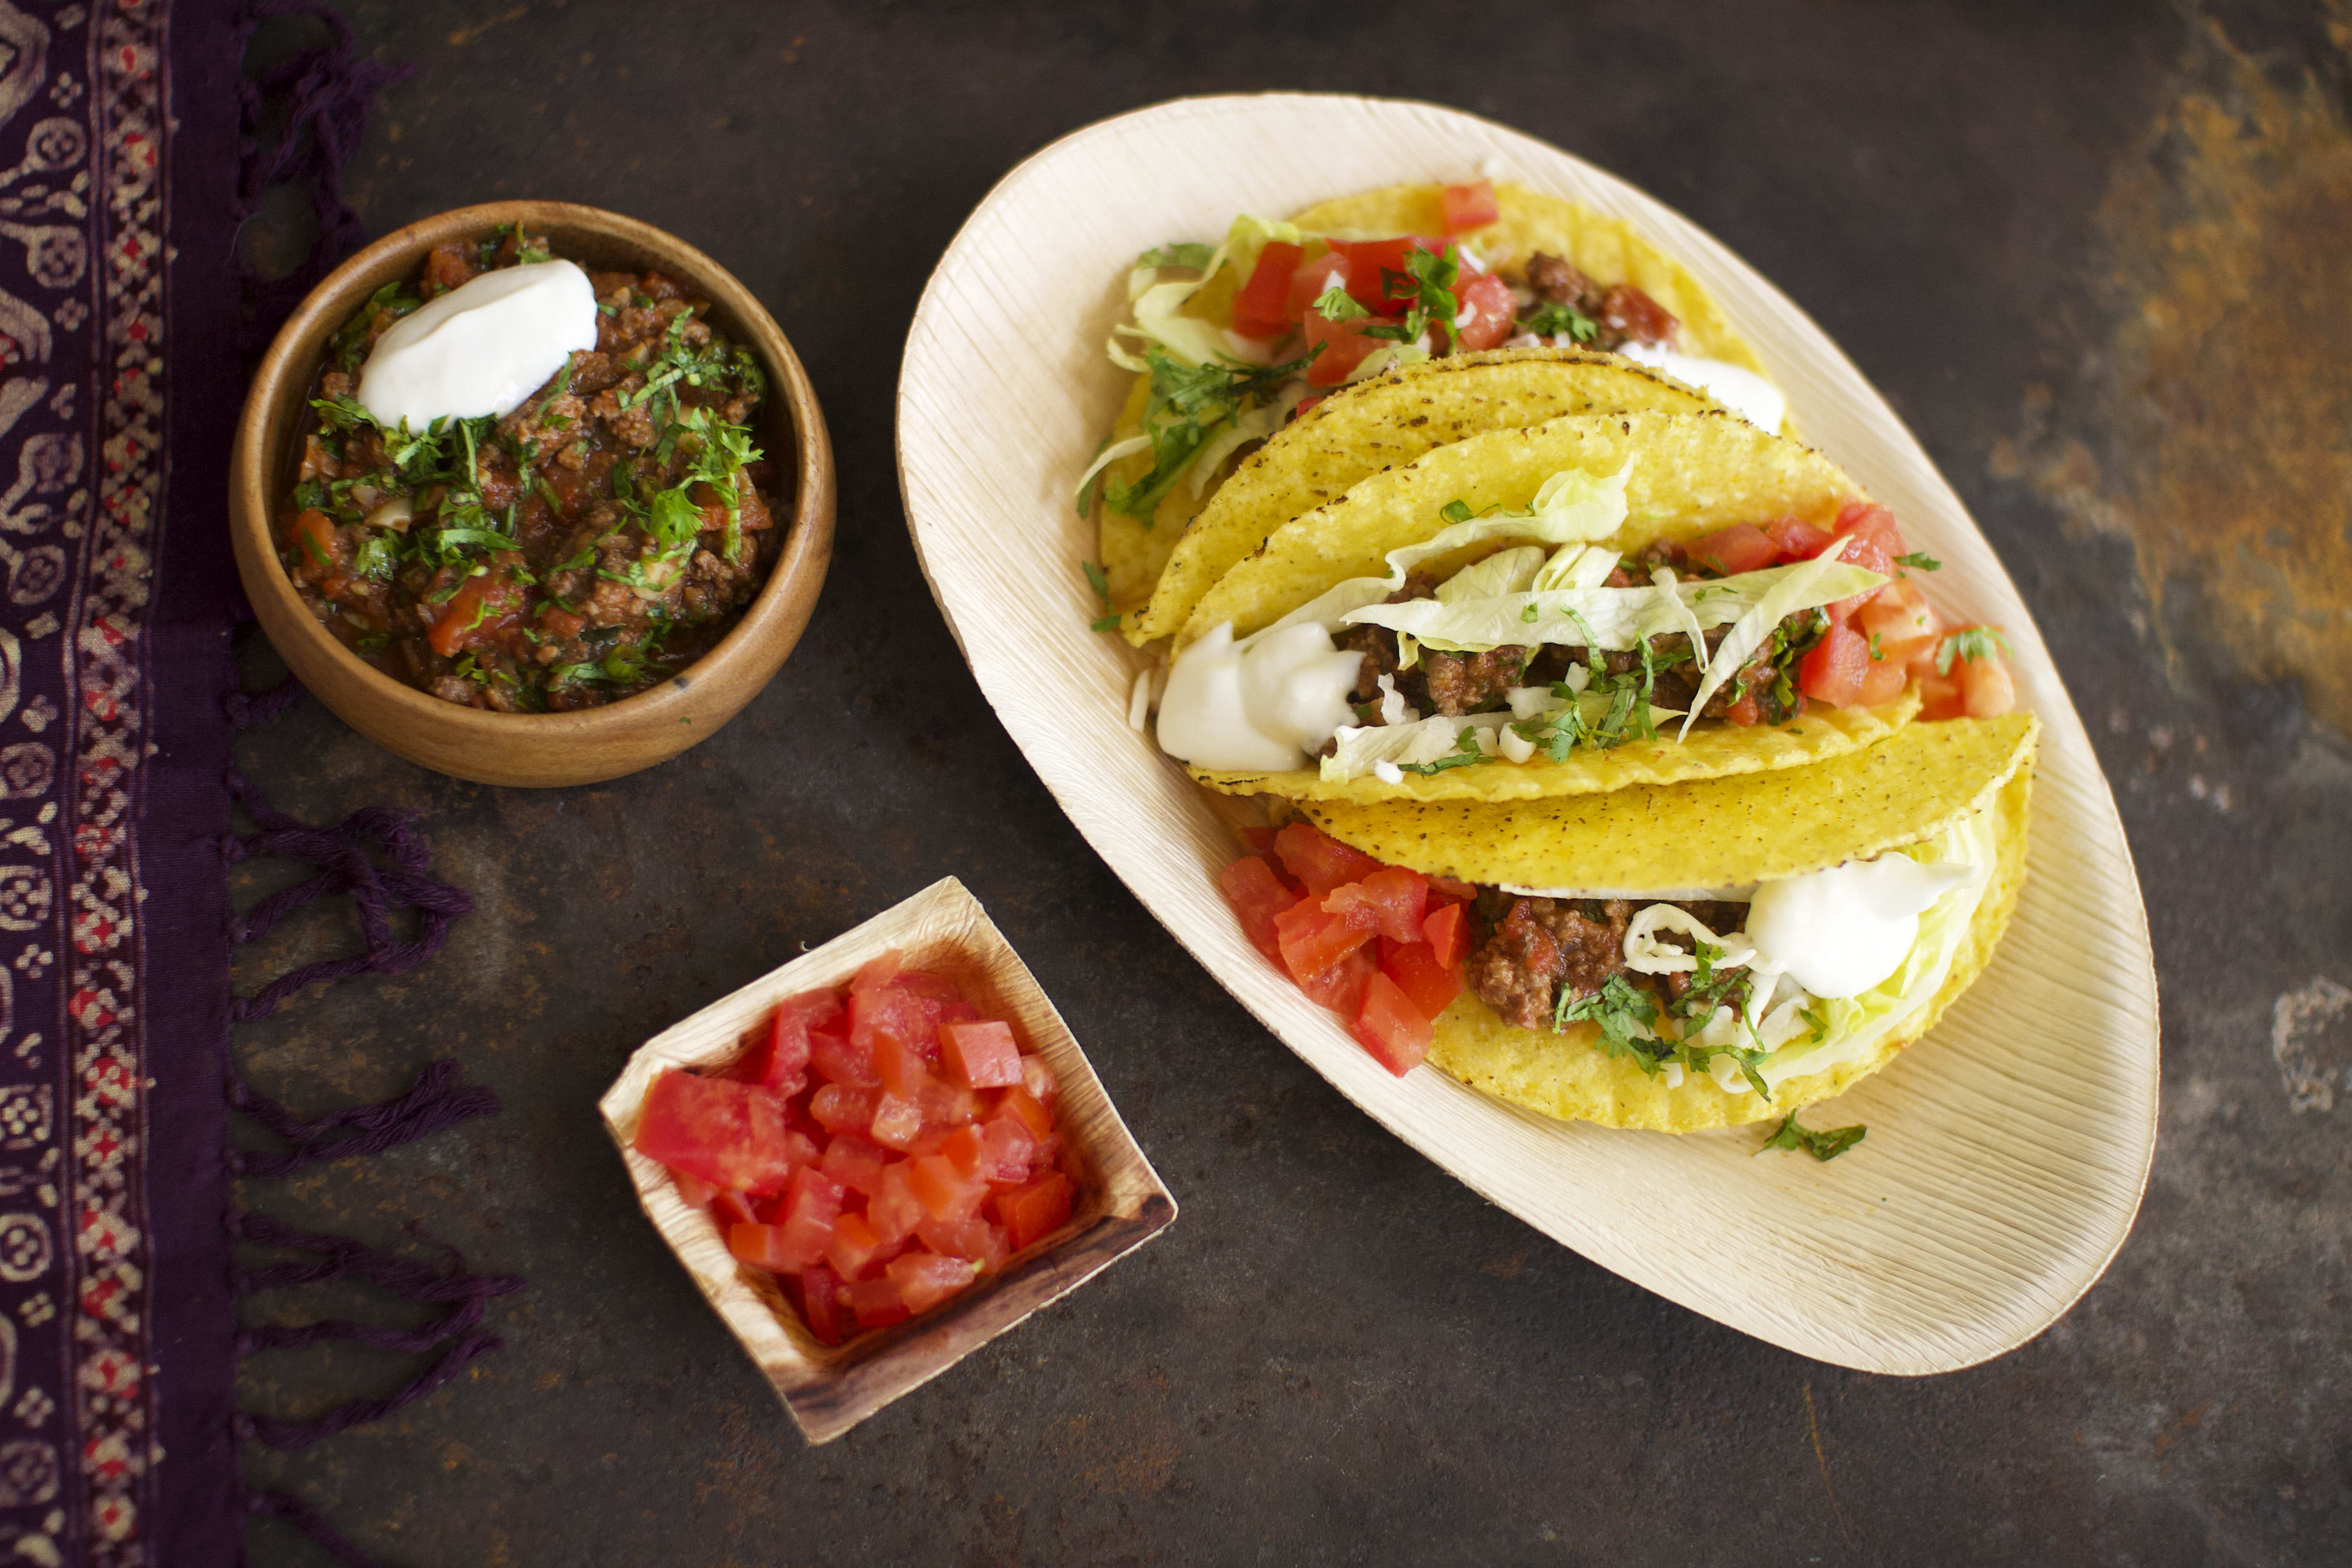 Crispy Beef Tacos with Lettuce, Tomato and Cheese